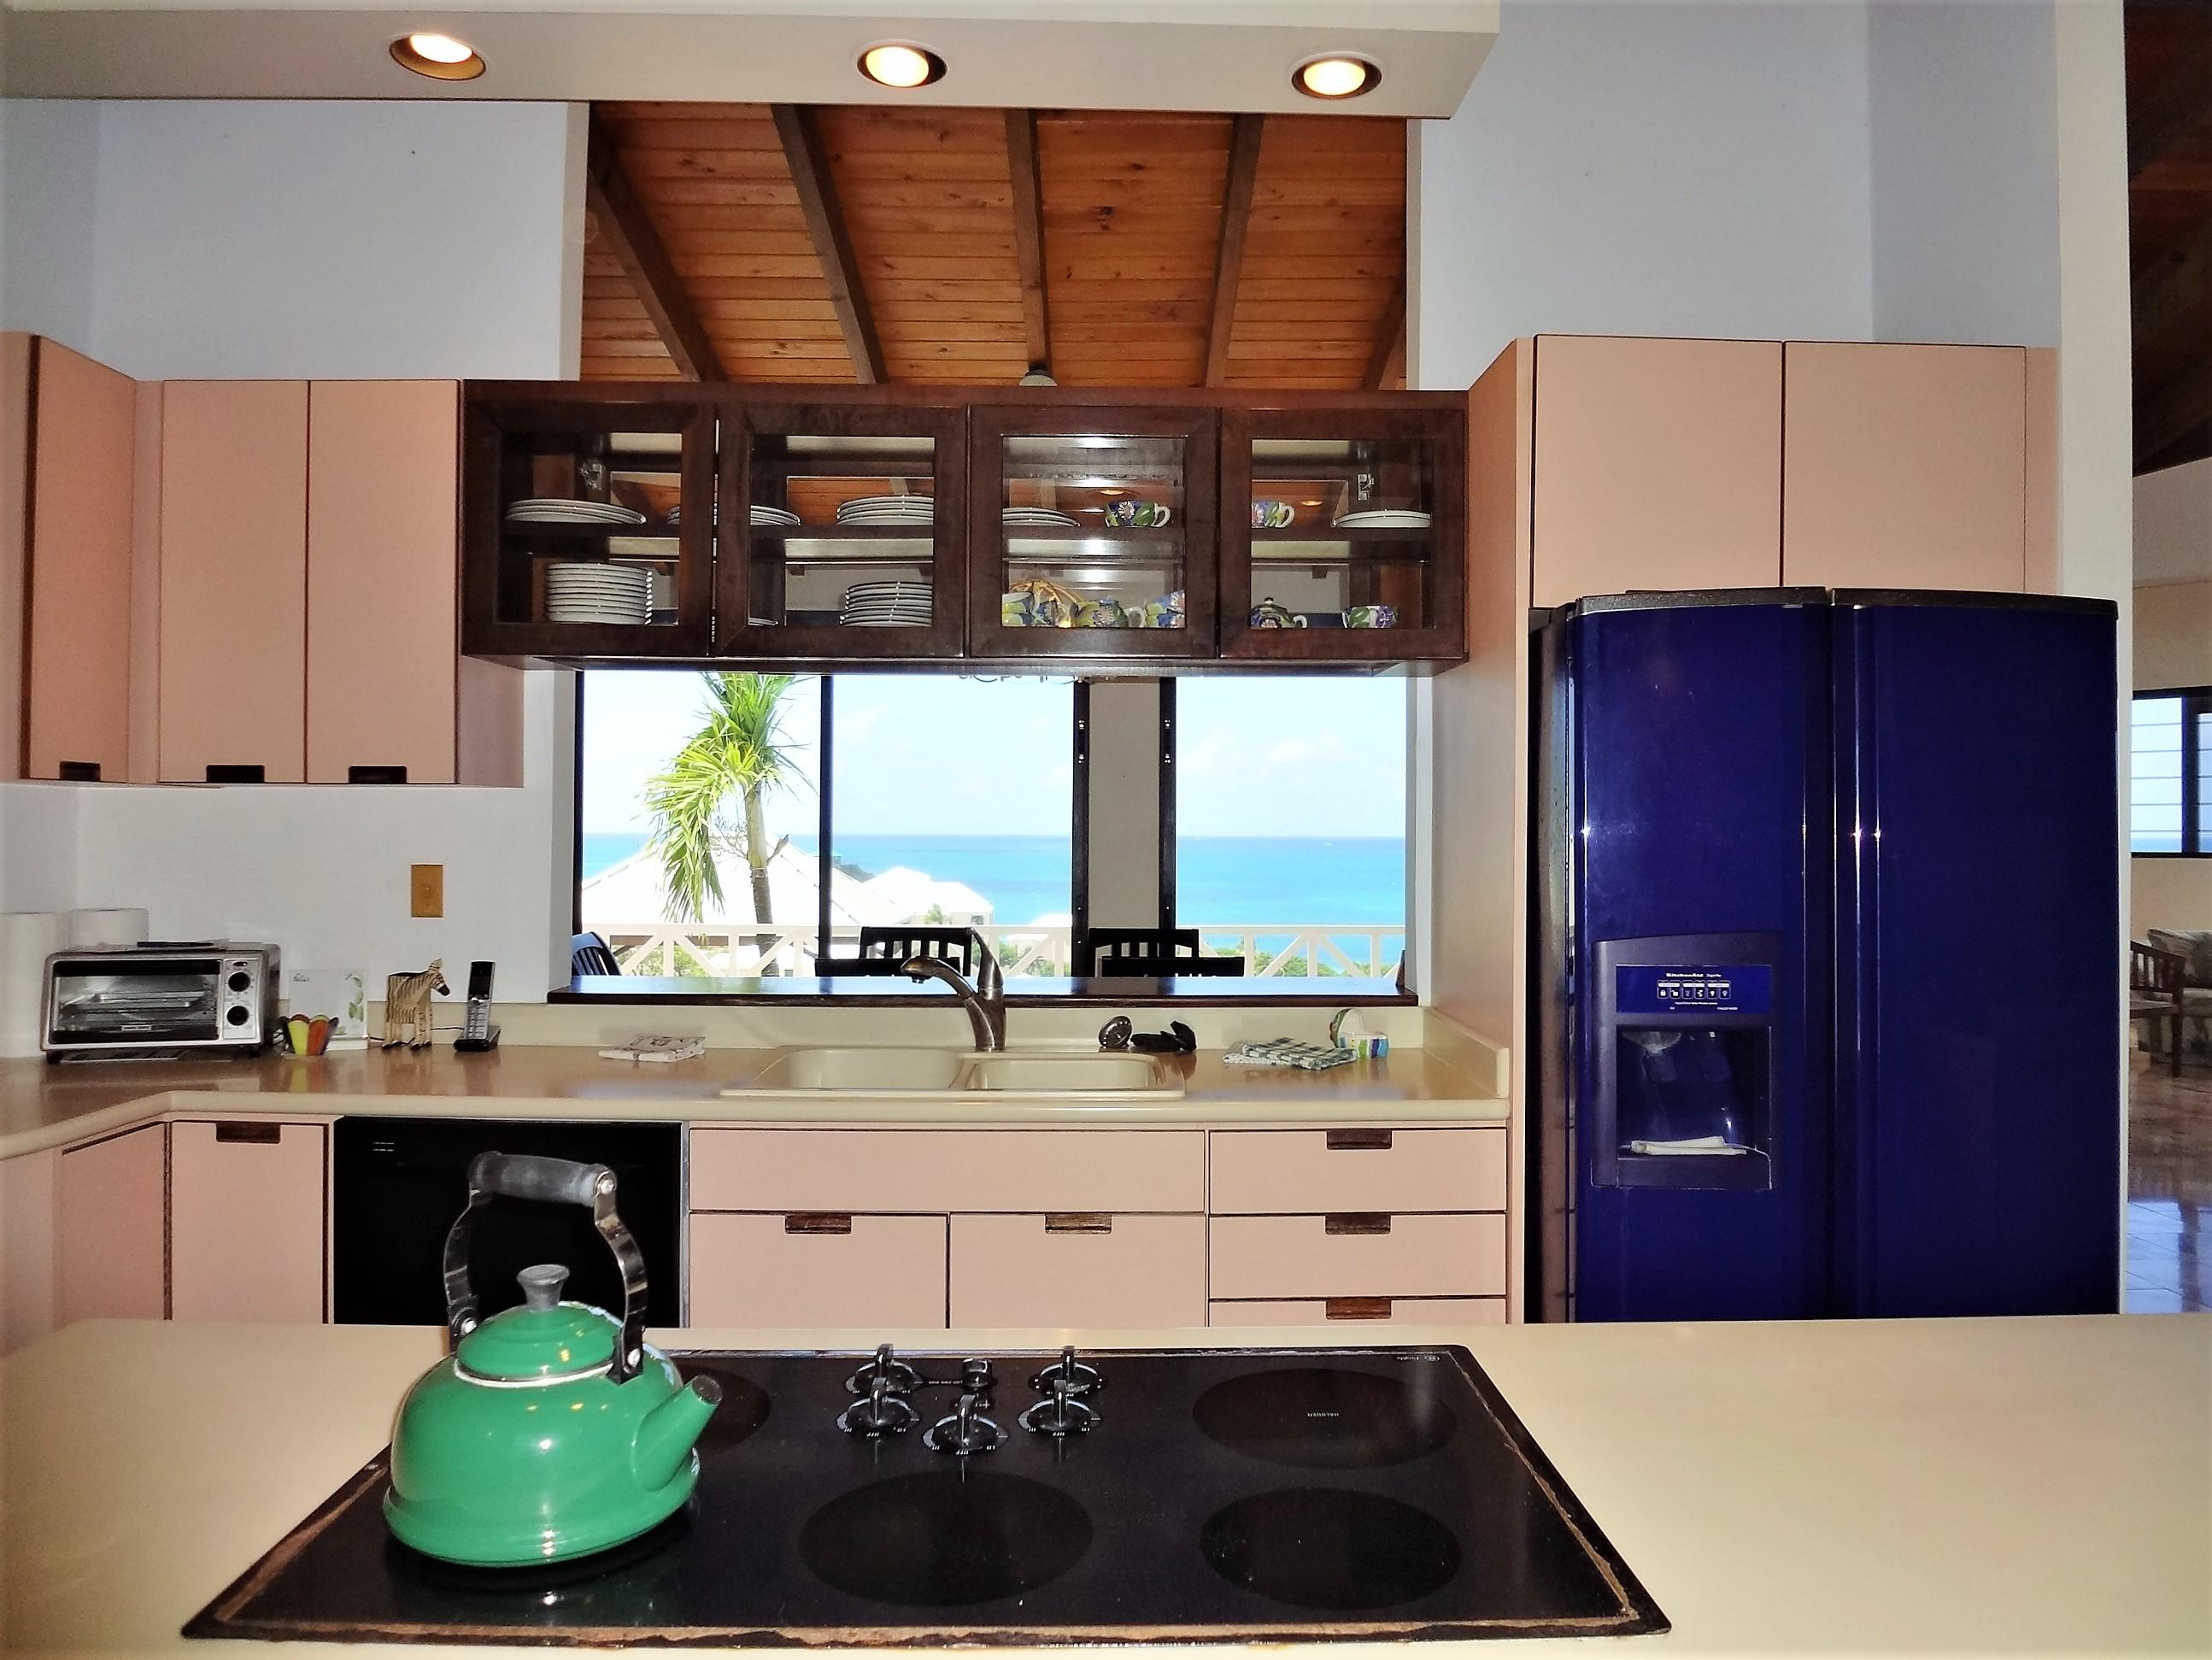 Kitchen w/ Sea Views!